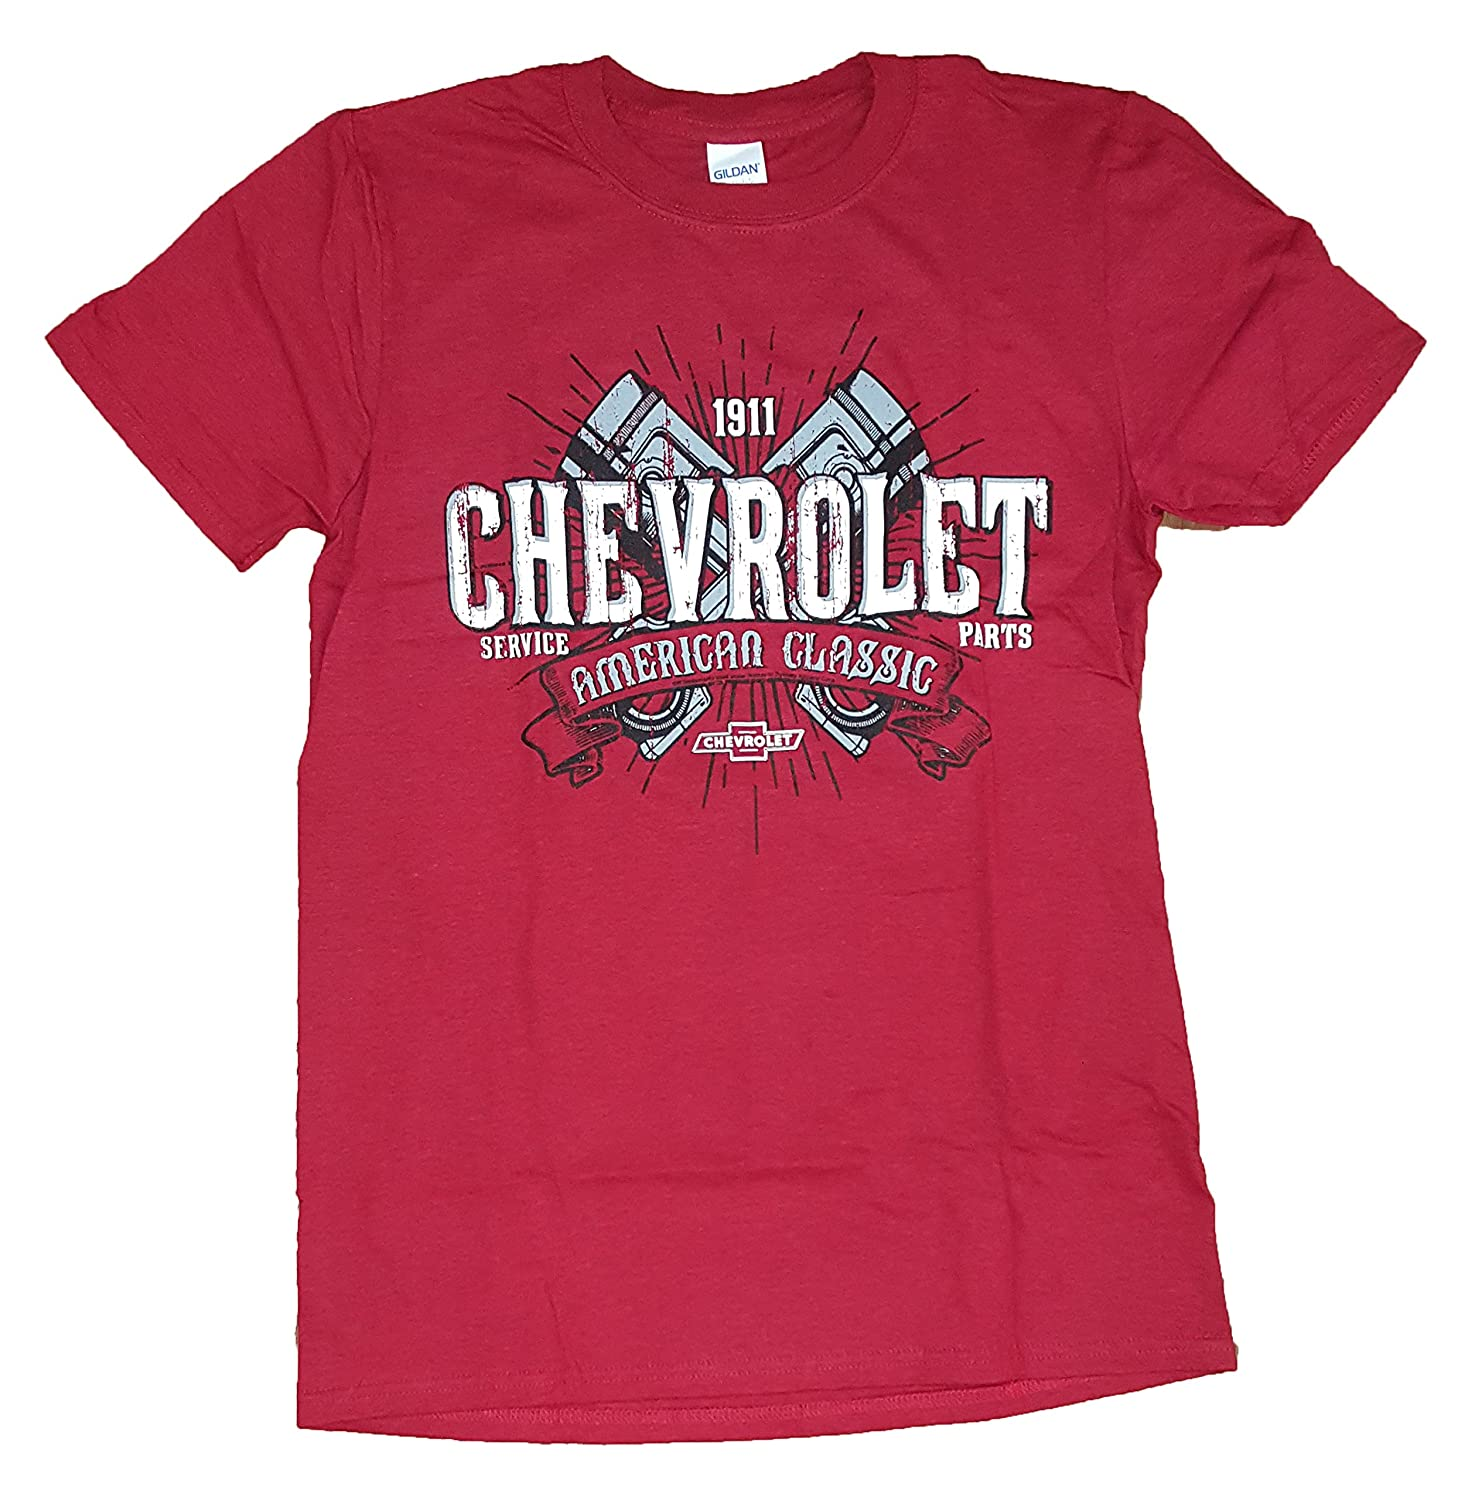 Chevrolet American Classic Red Graphic T-Shirt